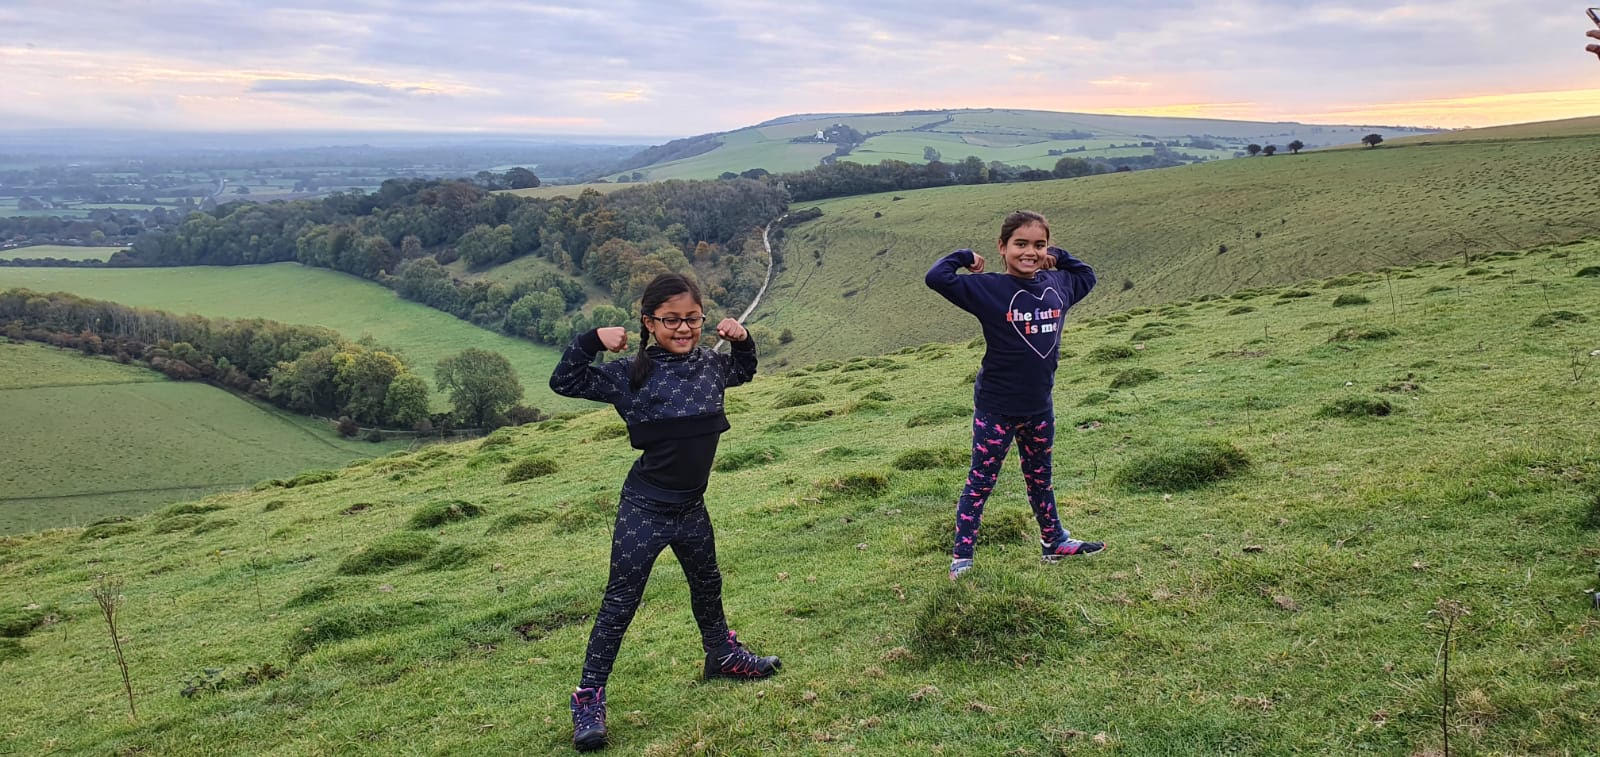 Young Cricketers Raise Over £7,000 for St John's Park - Sanaya and Lalanas Hill Girls